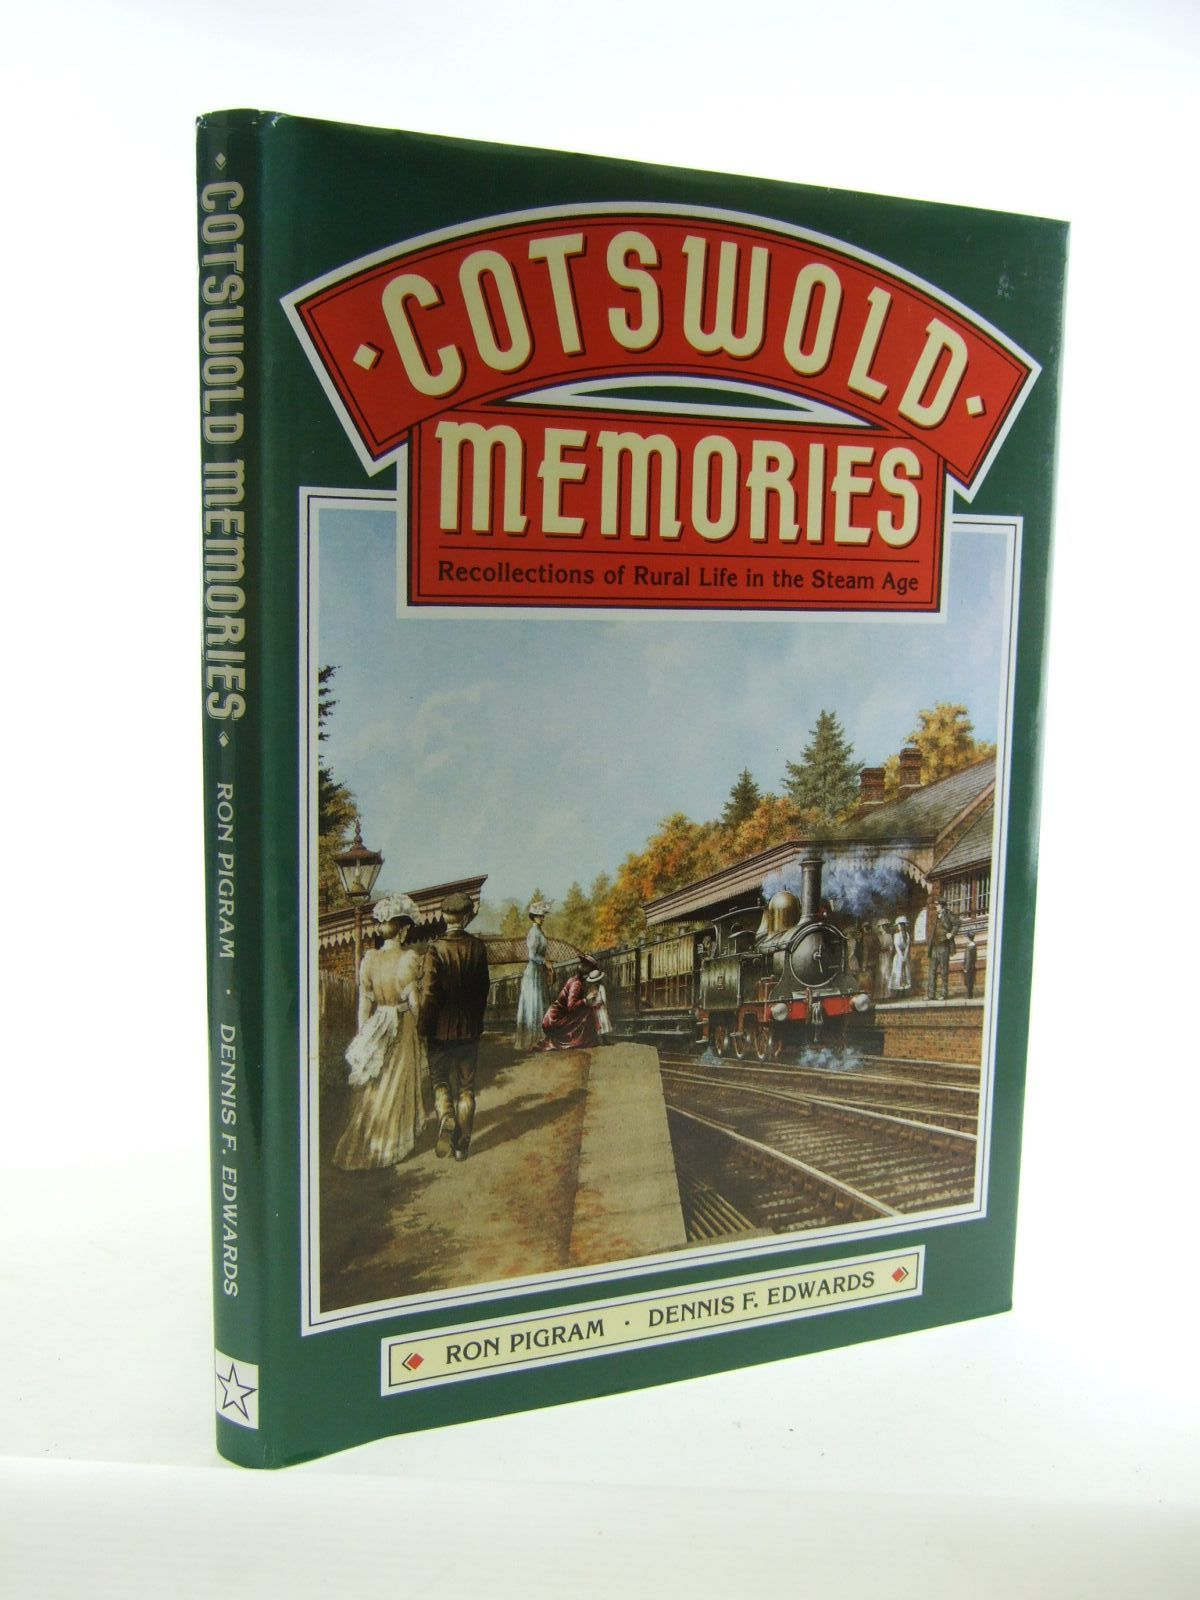 Photo of COTSWOLD MEMORIES written by Pigram, Ron Edwards, Dennis F. published by Silver Star Books (STOCK CODE: 1207159)  for sale by Stella & Rose's Books